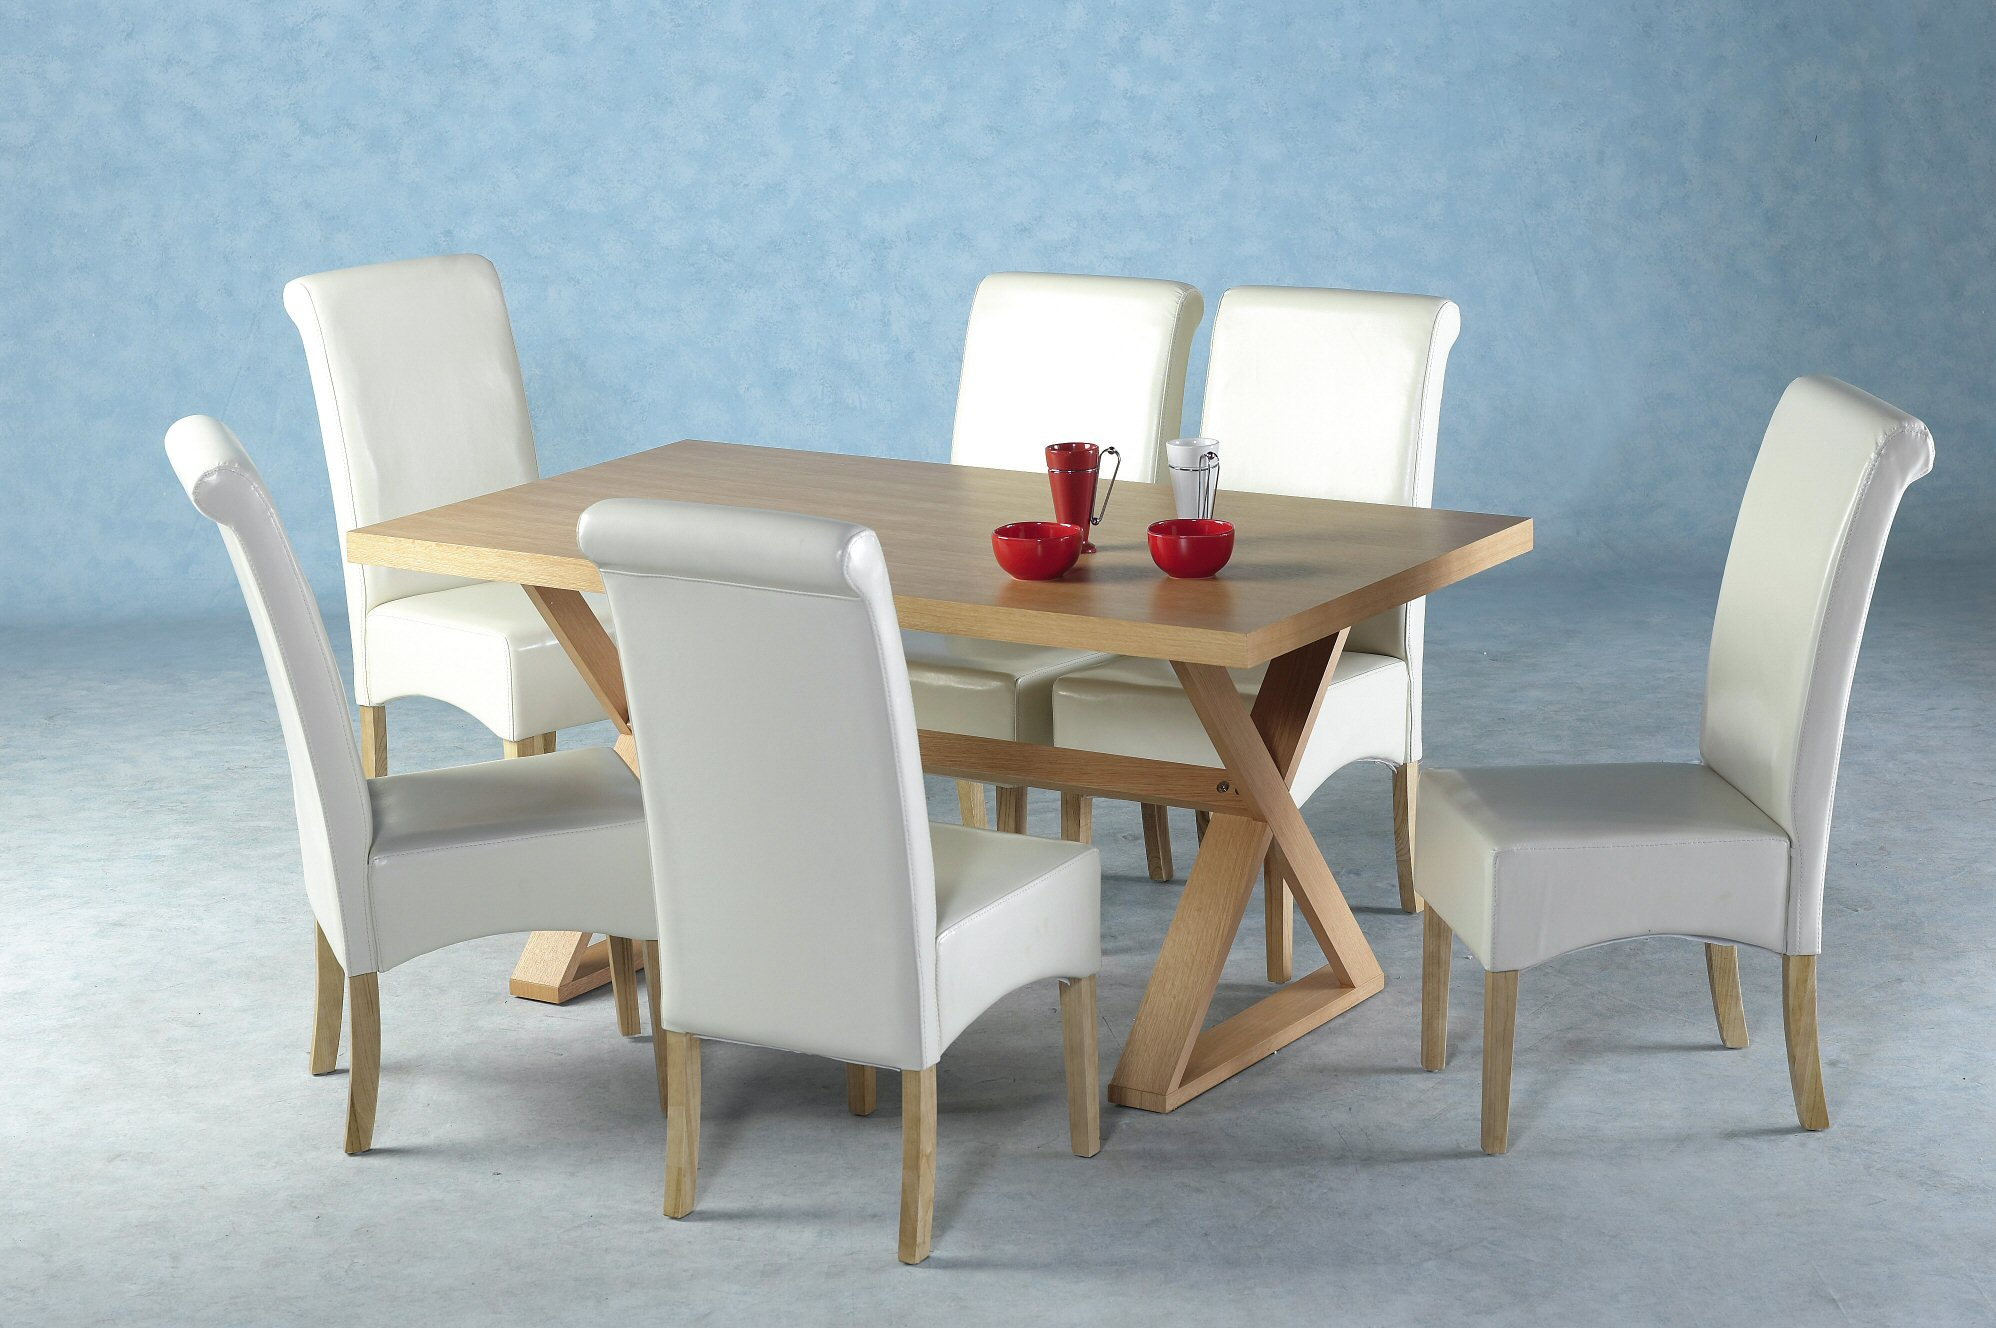 Oregon Table & 4 Chairs